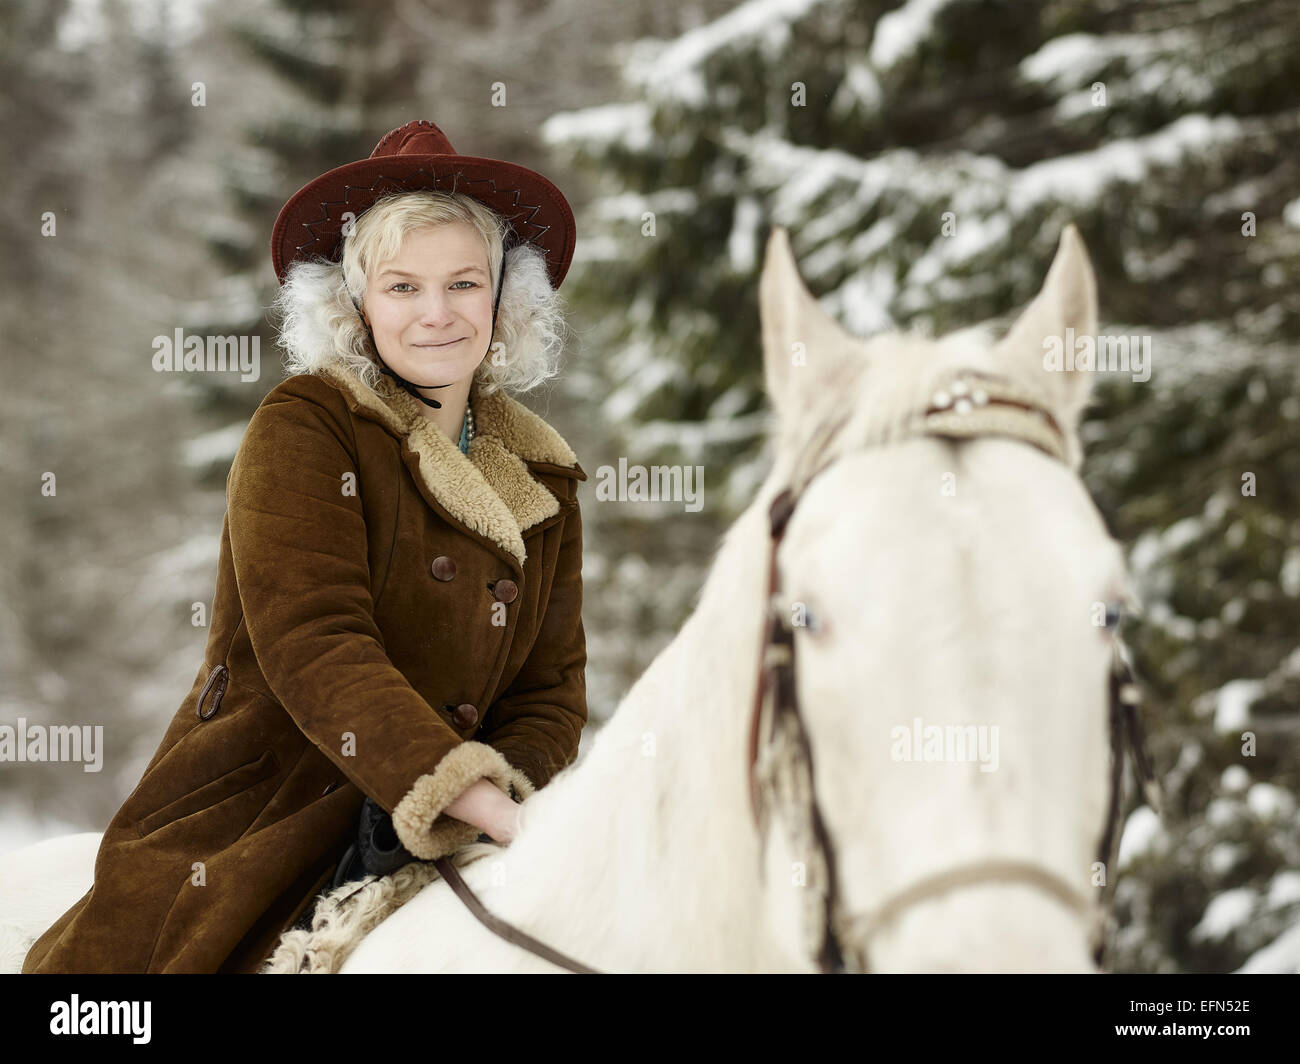 Attractive woman wearing a winter jacket and hat, she riding a white horse and she looks towards the camera - Stock Image